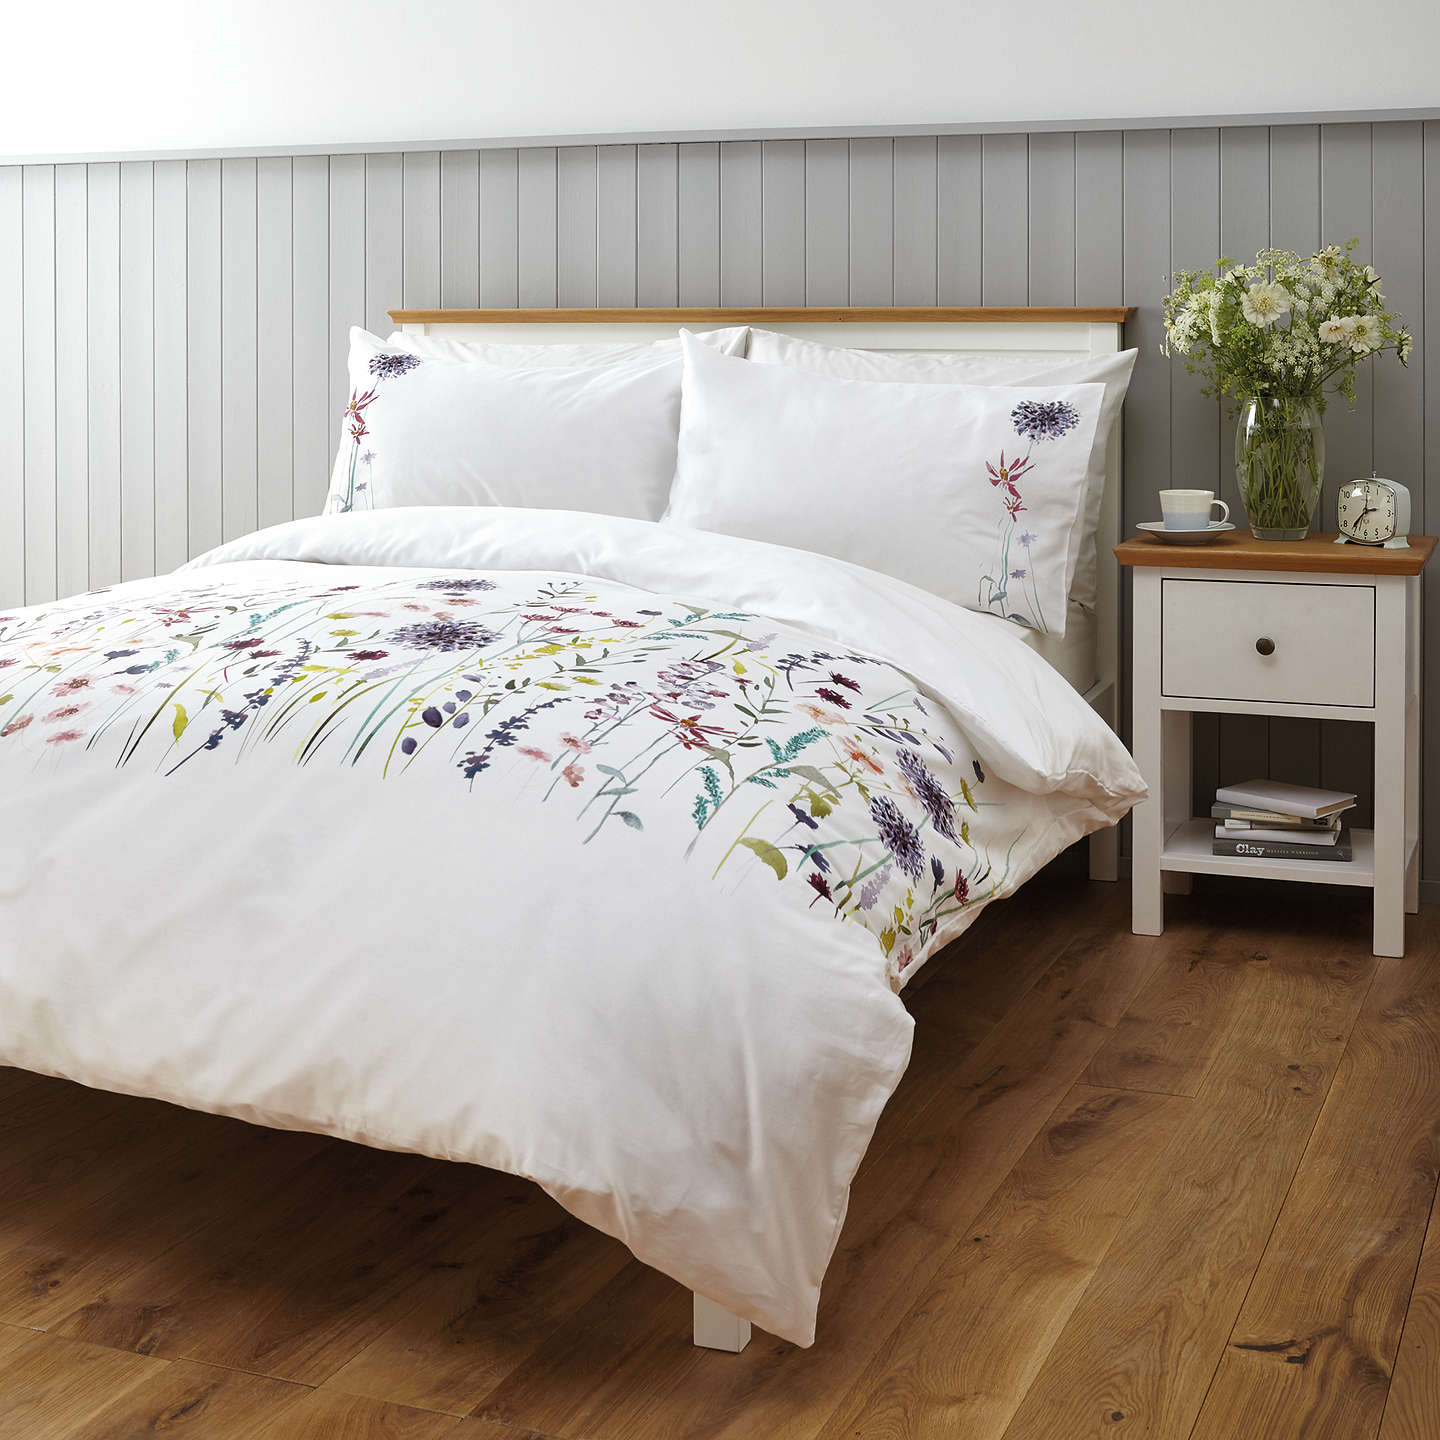 John Lewis Leckford Duvet Cover And Pillowcase Set Single Online At Johnlewis